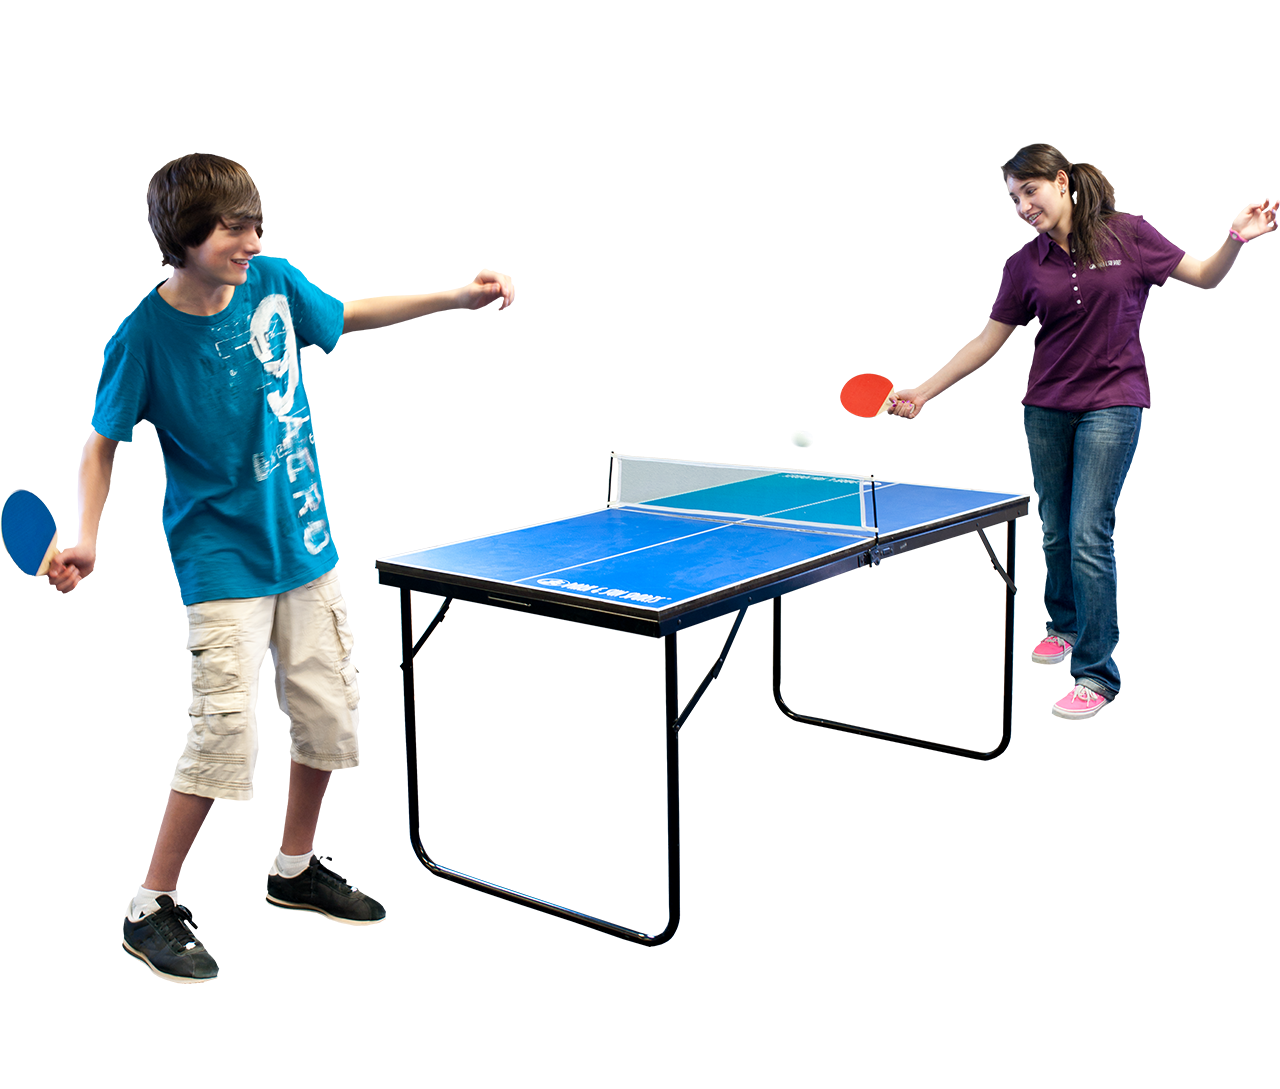 Park and Sports Blue Mini Table Tennis Table Action